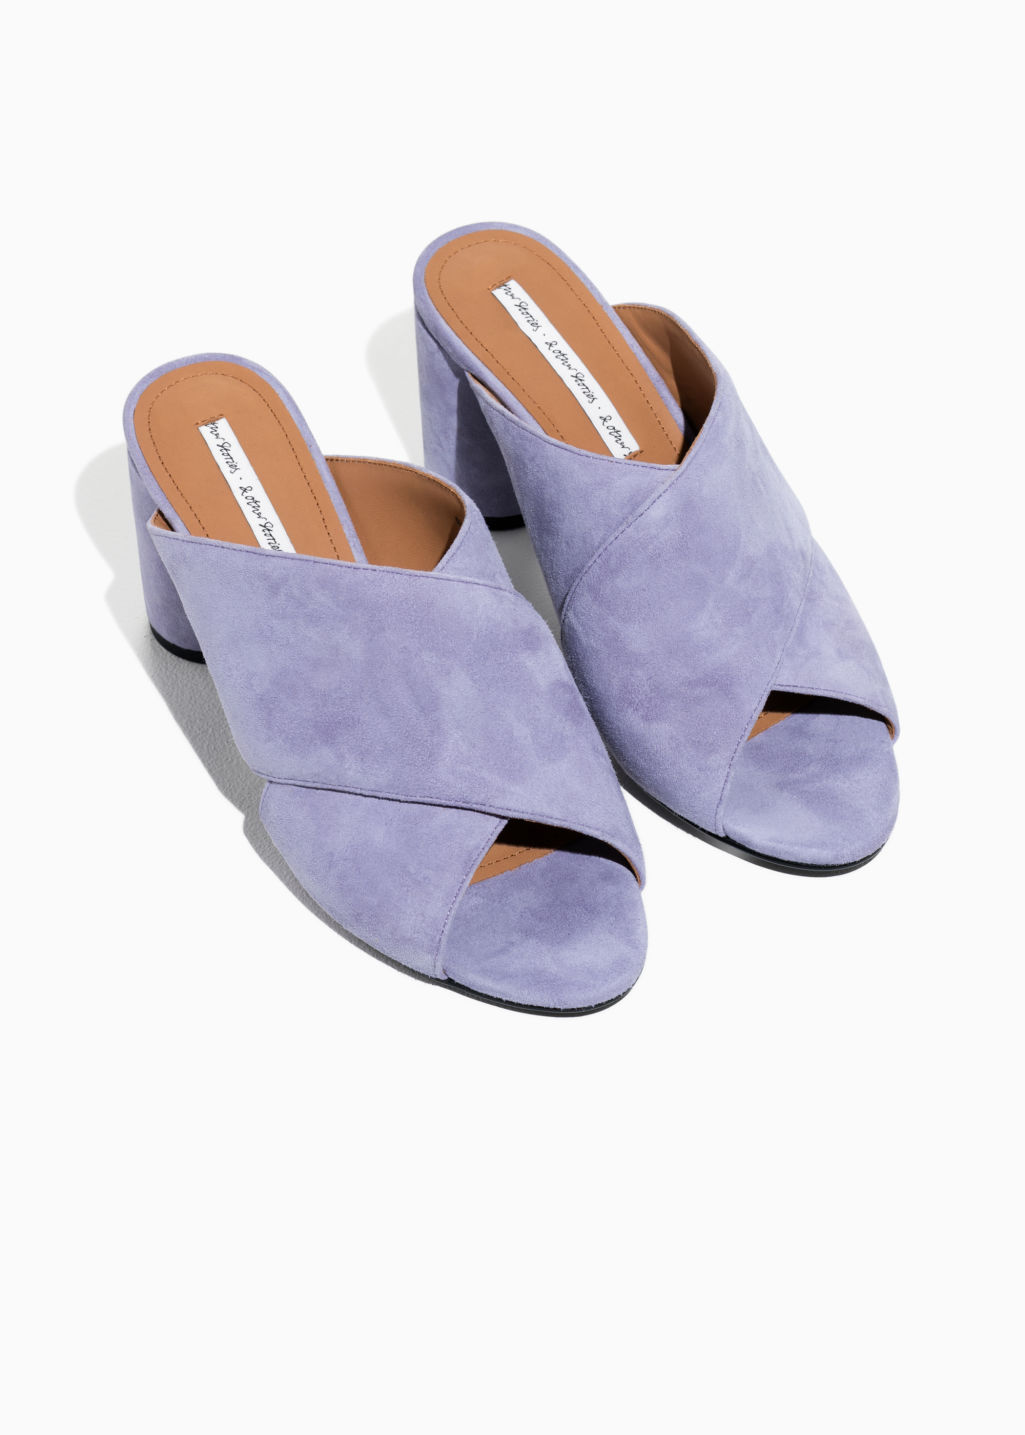 & OTHER STORIES Suede Cross Strap Mules EVF9niERaT